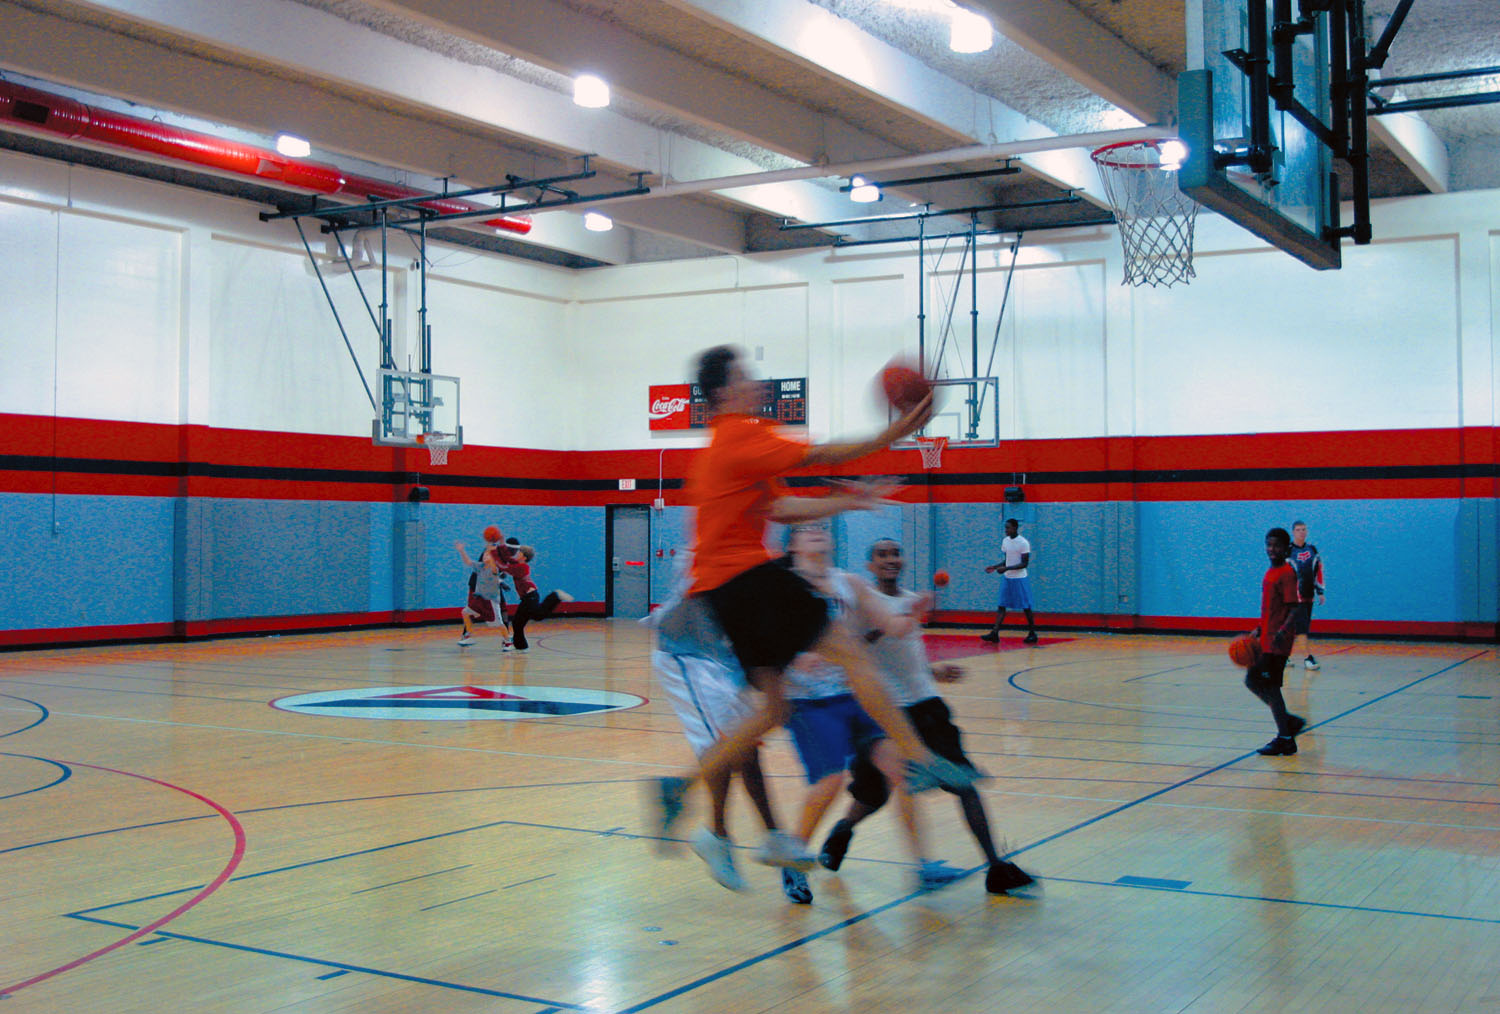 A basketball game at the Lakeland Family YMCA